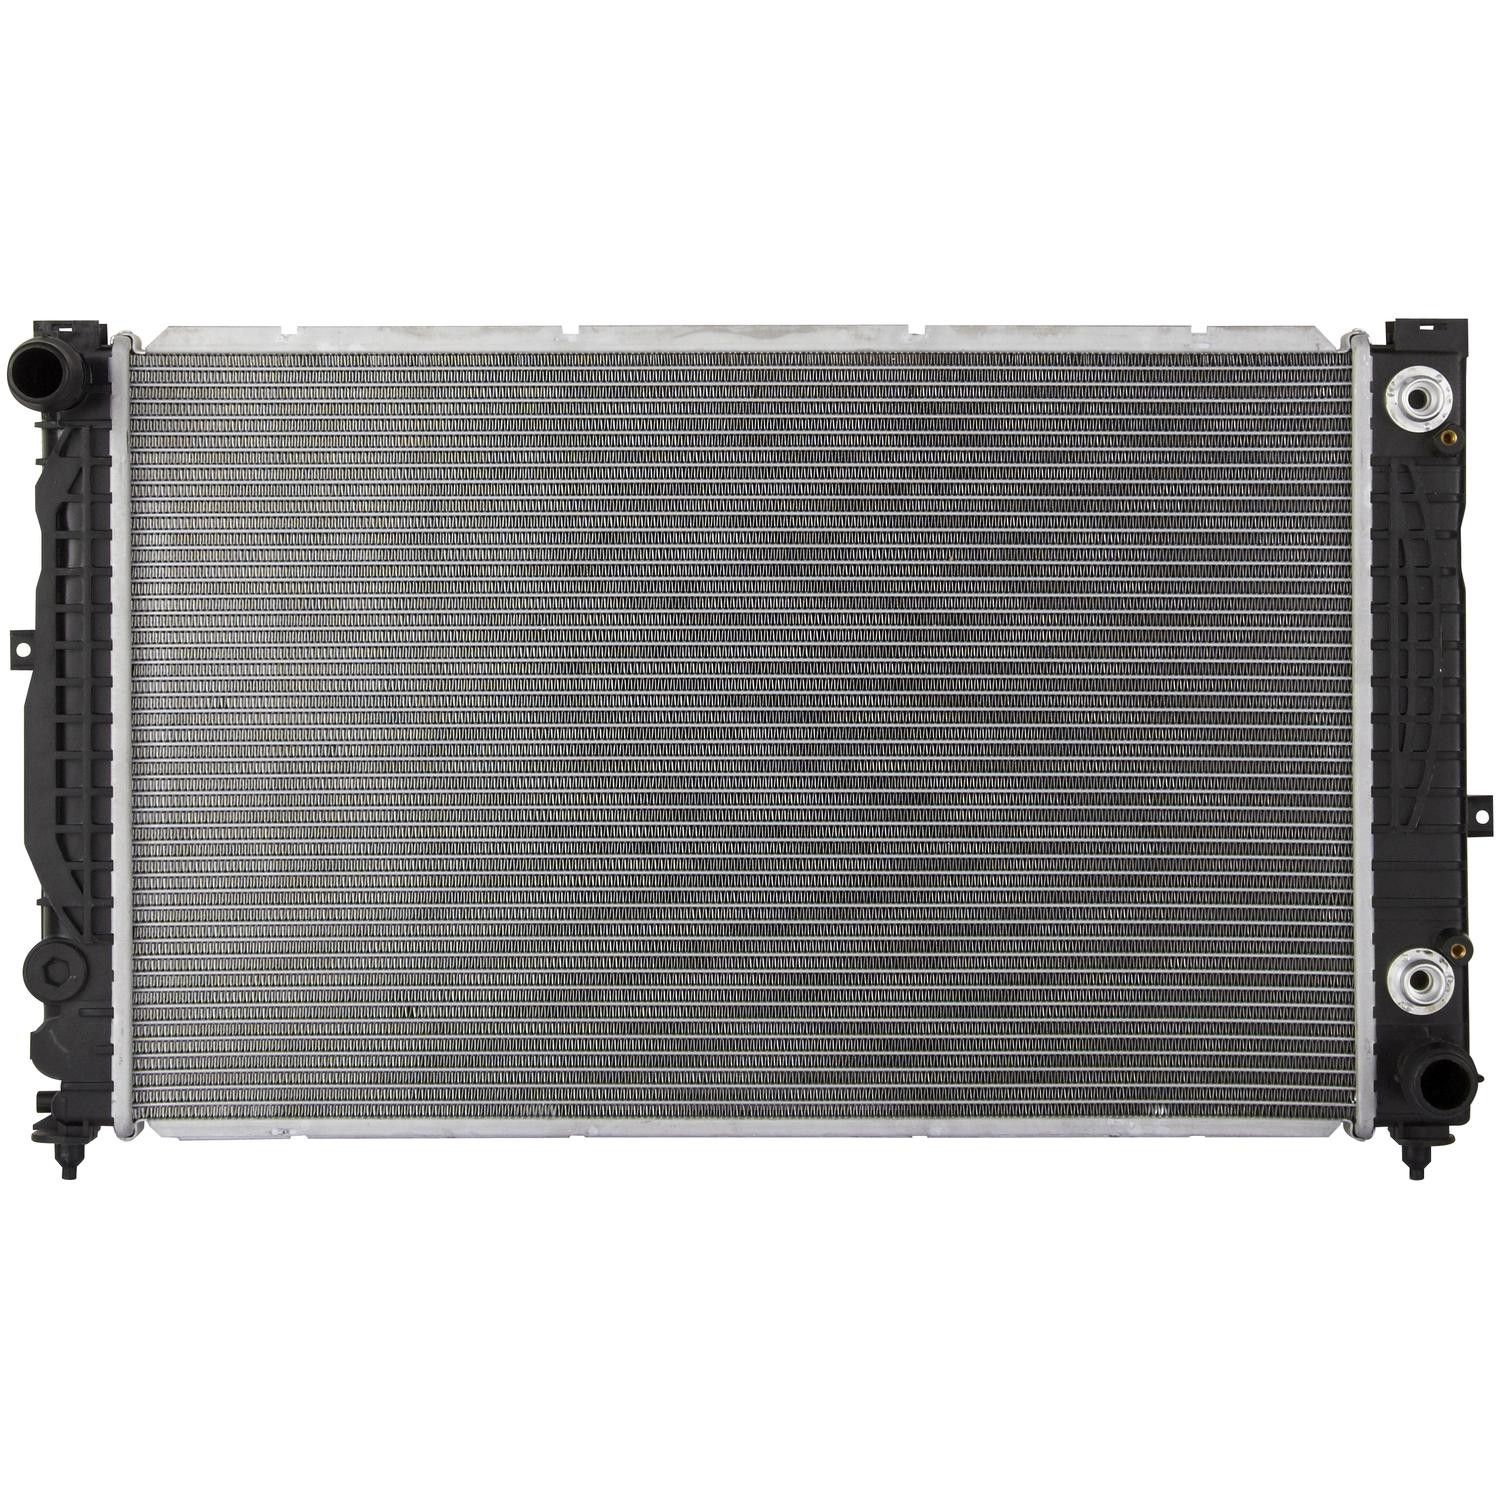 Audi S4 Radiator Replacement Apdi Behr Csf Denso 2005 Coolant System Diagram 2000 6 Cyl 27l Spectra Cu2648 15 11 16 In Core Width From Top To Bottom Tubes